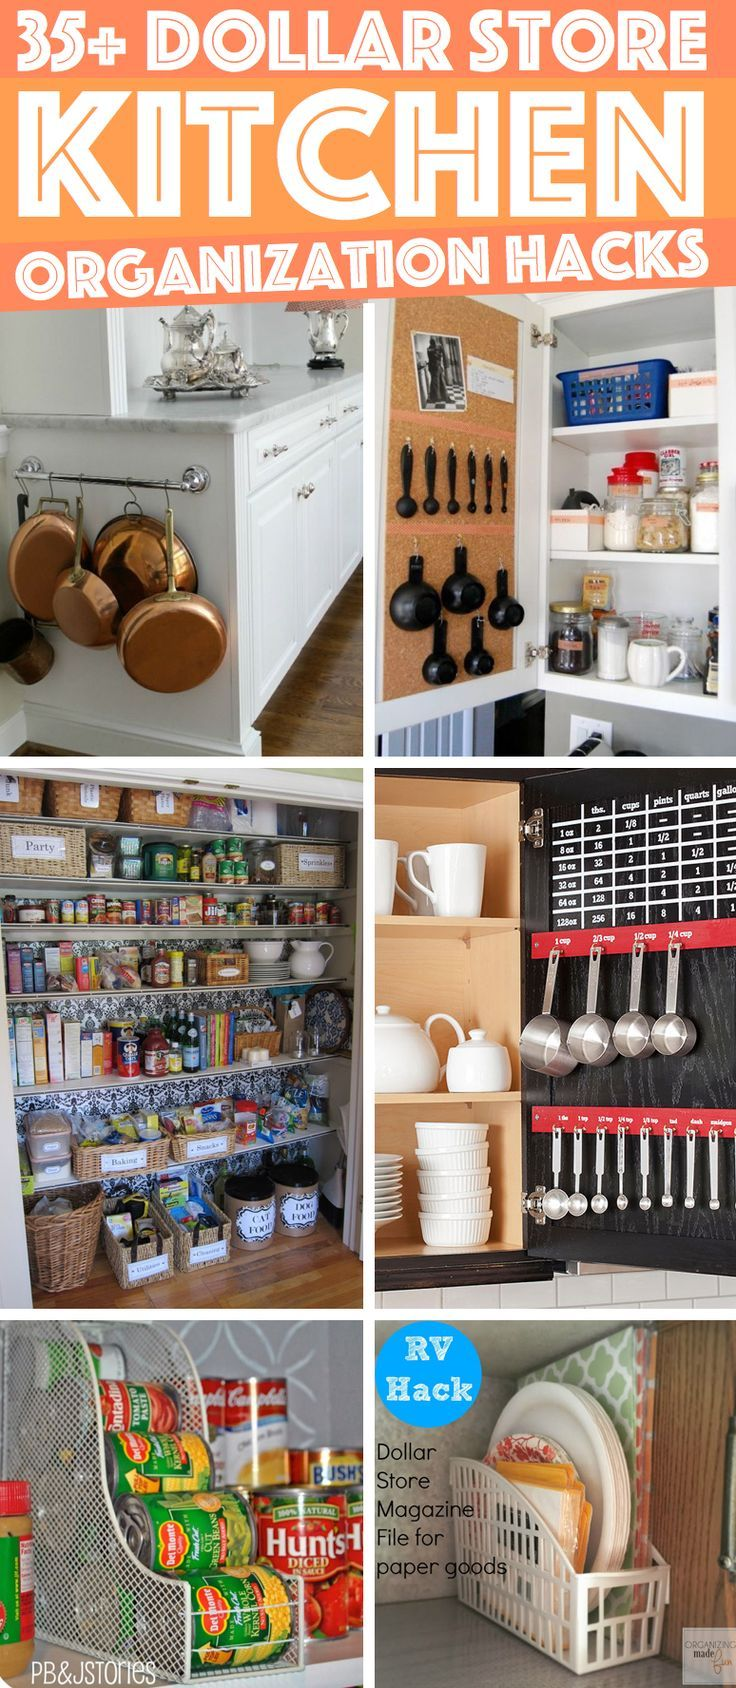 36 Dollar Store Kitchen Organization Hacks You Can Pull Off Like a Childs Play  Kitchen ord 36 Dollar Store Kitchen Organization Hacks You Can Pull Off Like a Childs Play...